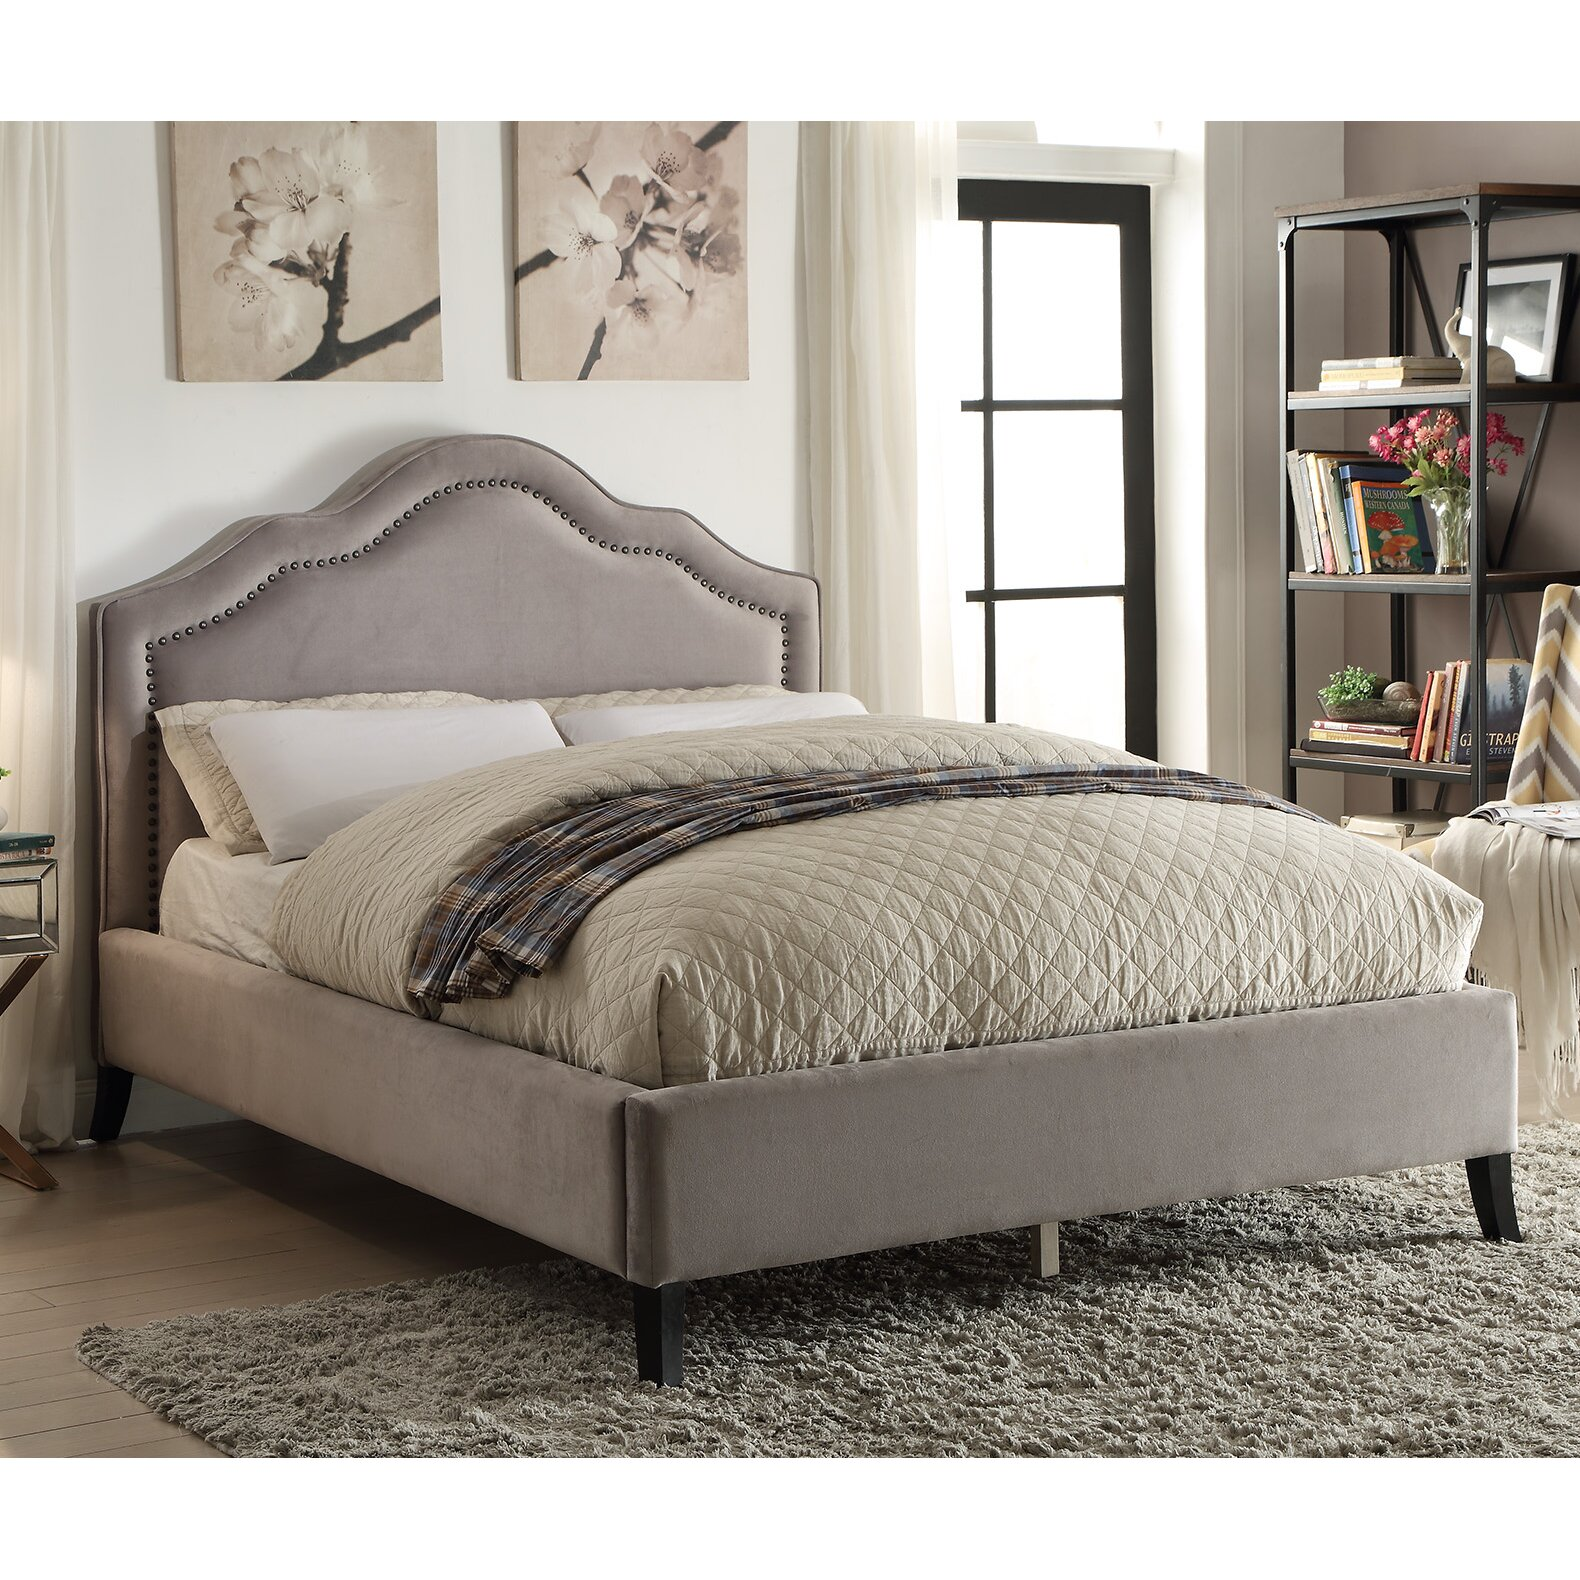 nspire queen upholstered platform bed  reviews  wayfair supply - queen upholstered platform bed